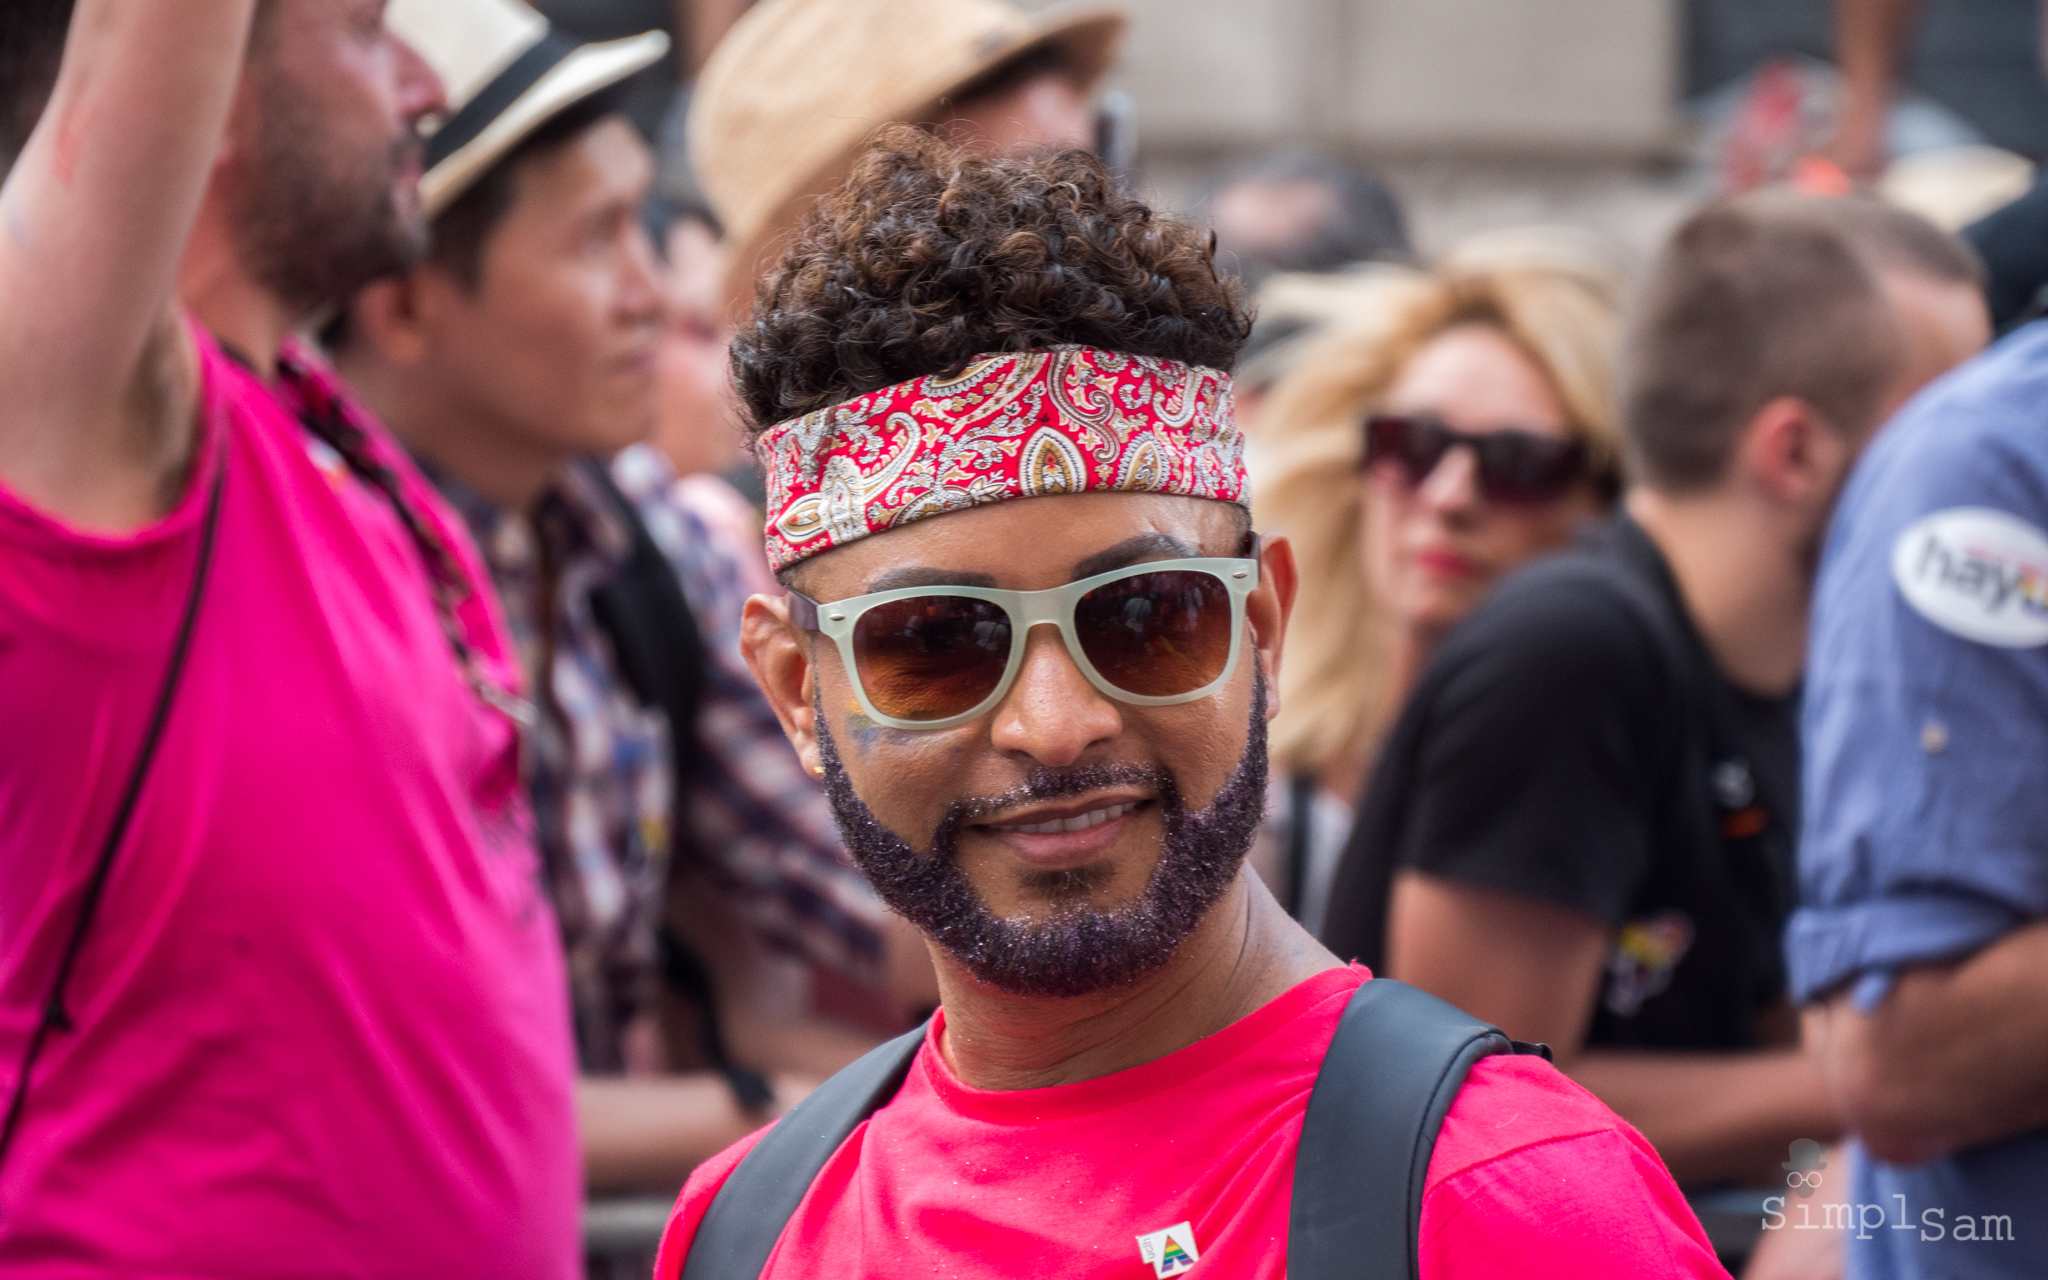 Pride London 2018 - Bandana Mana